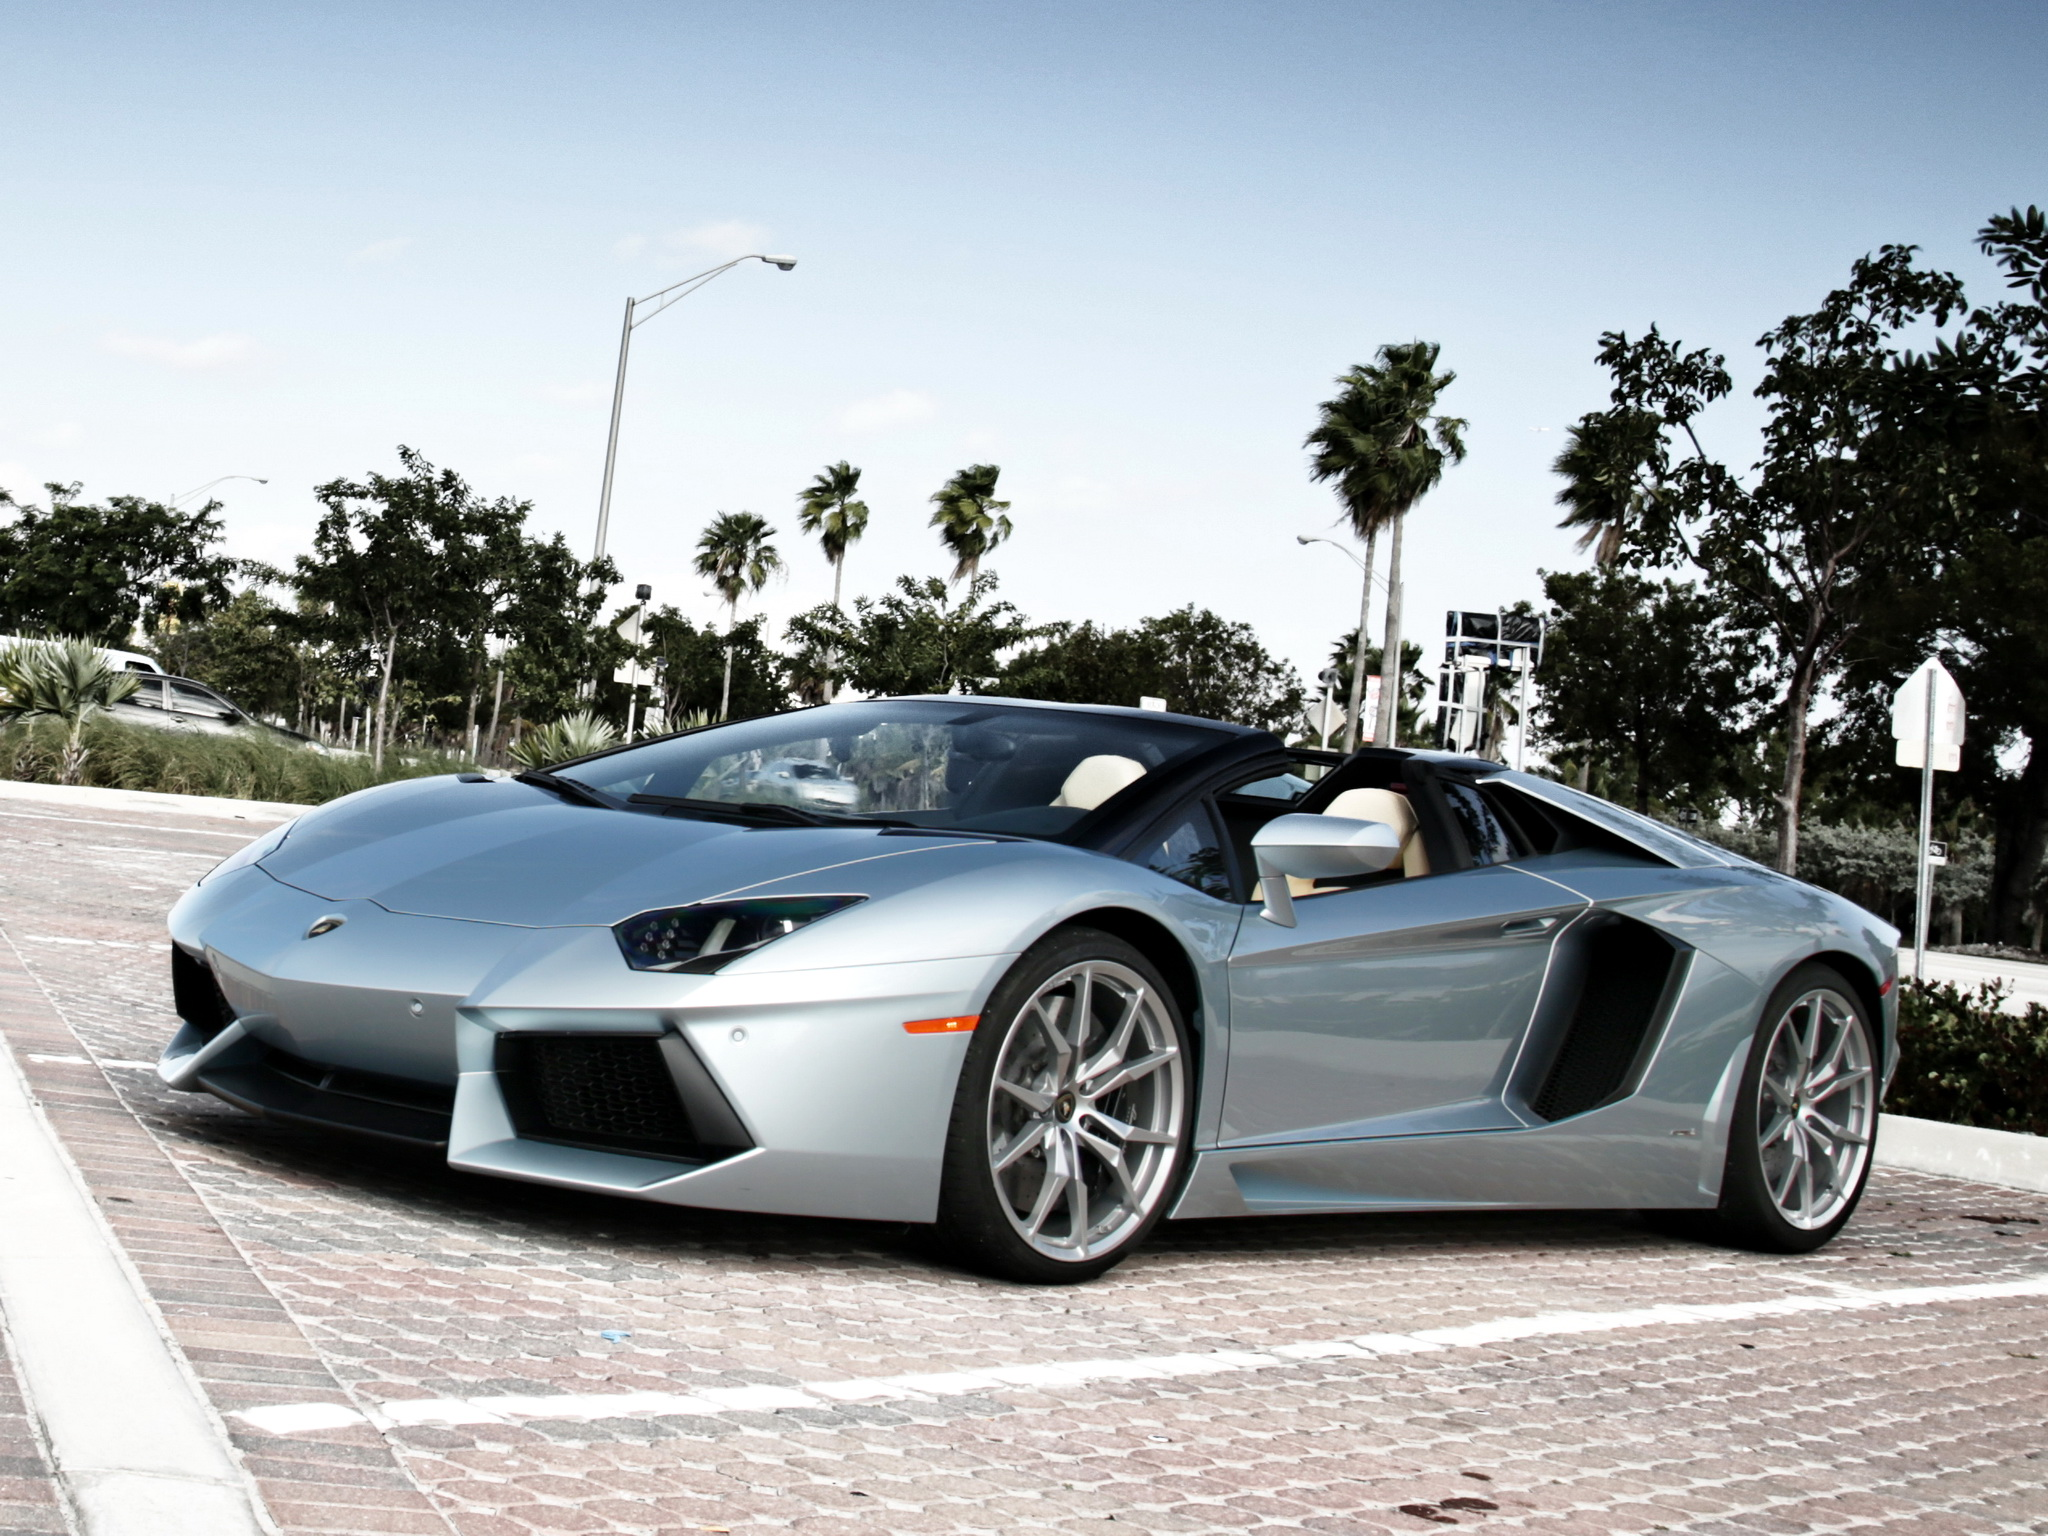 Lamborghini silver aventador photo recommend to wear in on every day in 2019